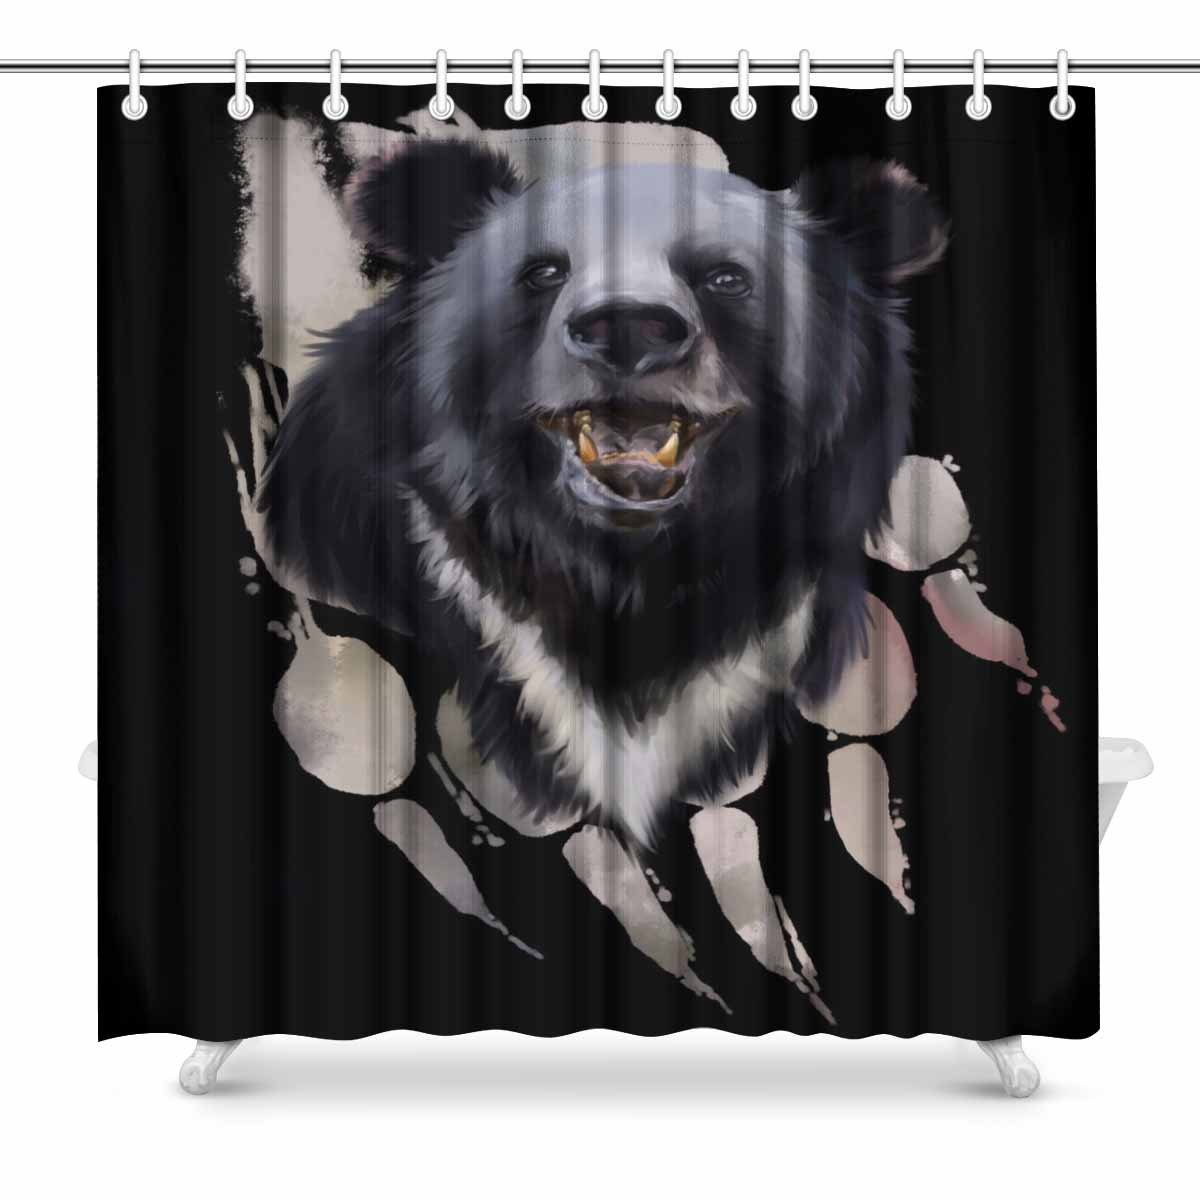 Health & Beauty Modest Aplysia Two Pigs Male And Female In Love Looking At A Cute Yellow Flower In The Meadow Bathroom Accessories Shower Curtains